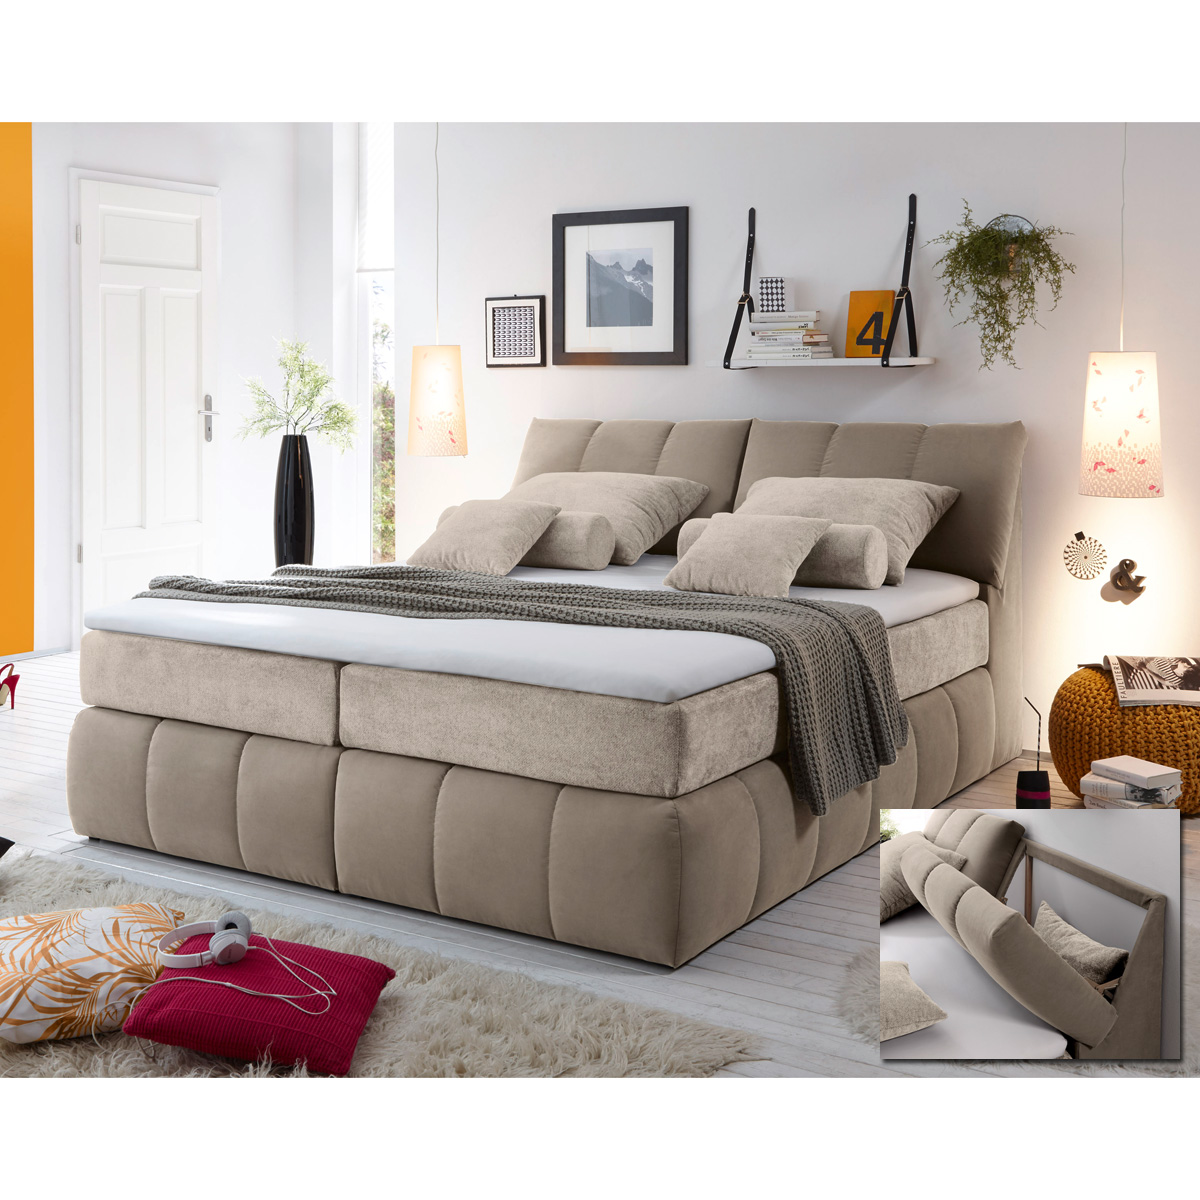 boxspringbett baltimore 1 bett schlafzimmerbett beige und braun topper 180x200 ebay. Black Bedroom Furniture Sets. Home Design Ideas